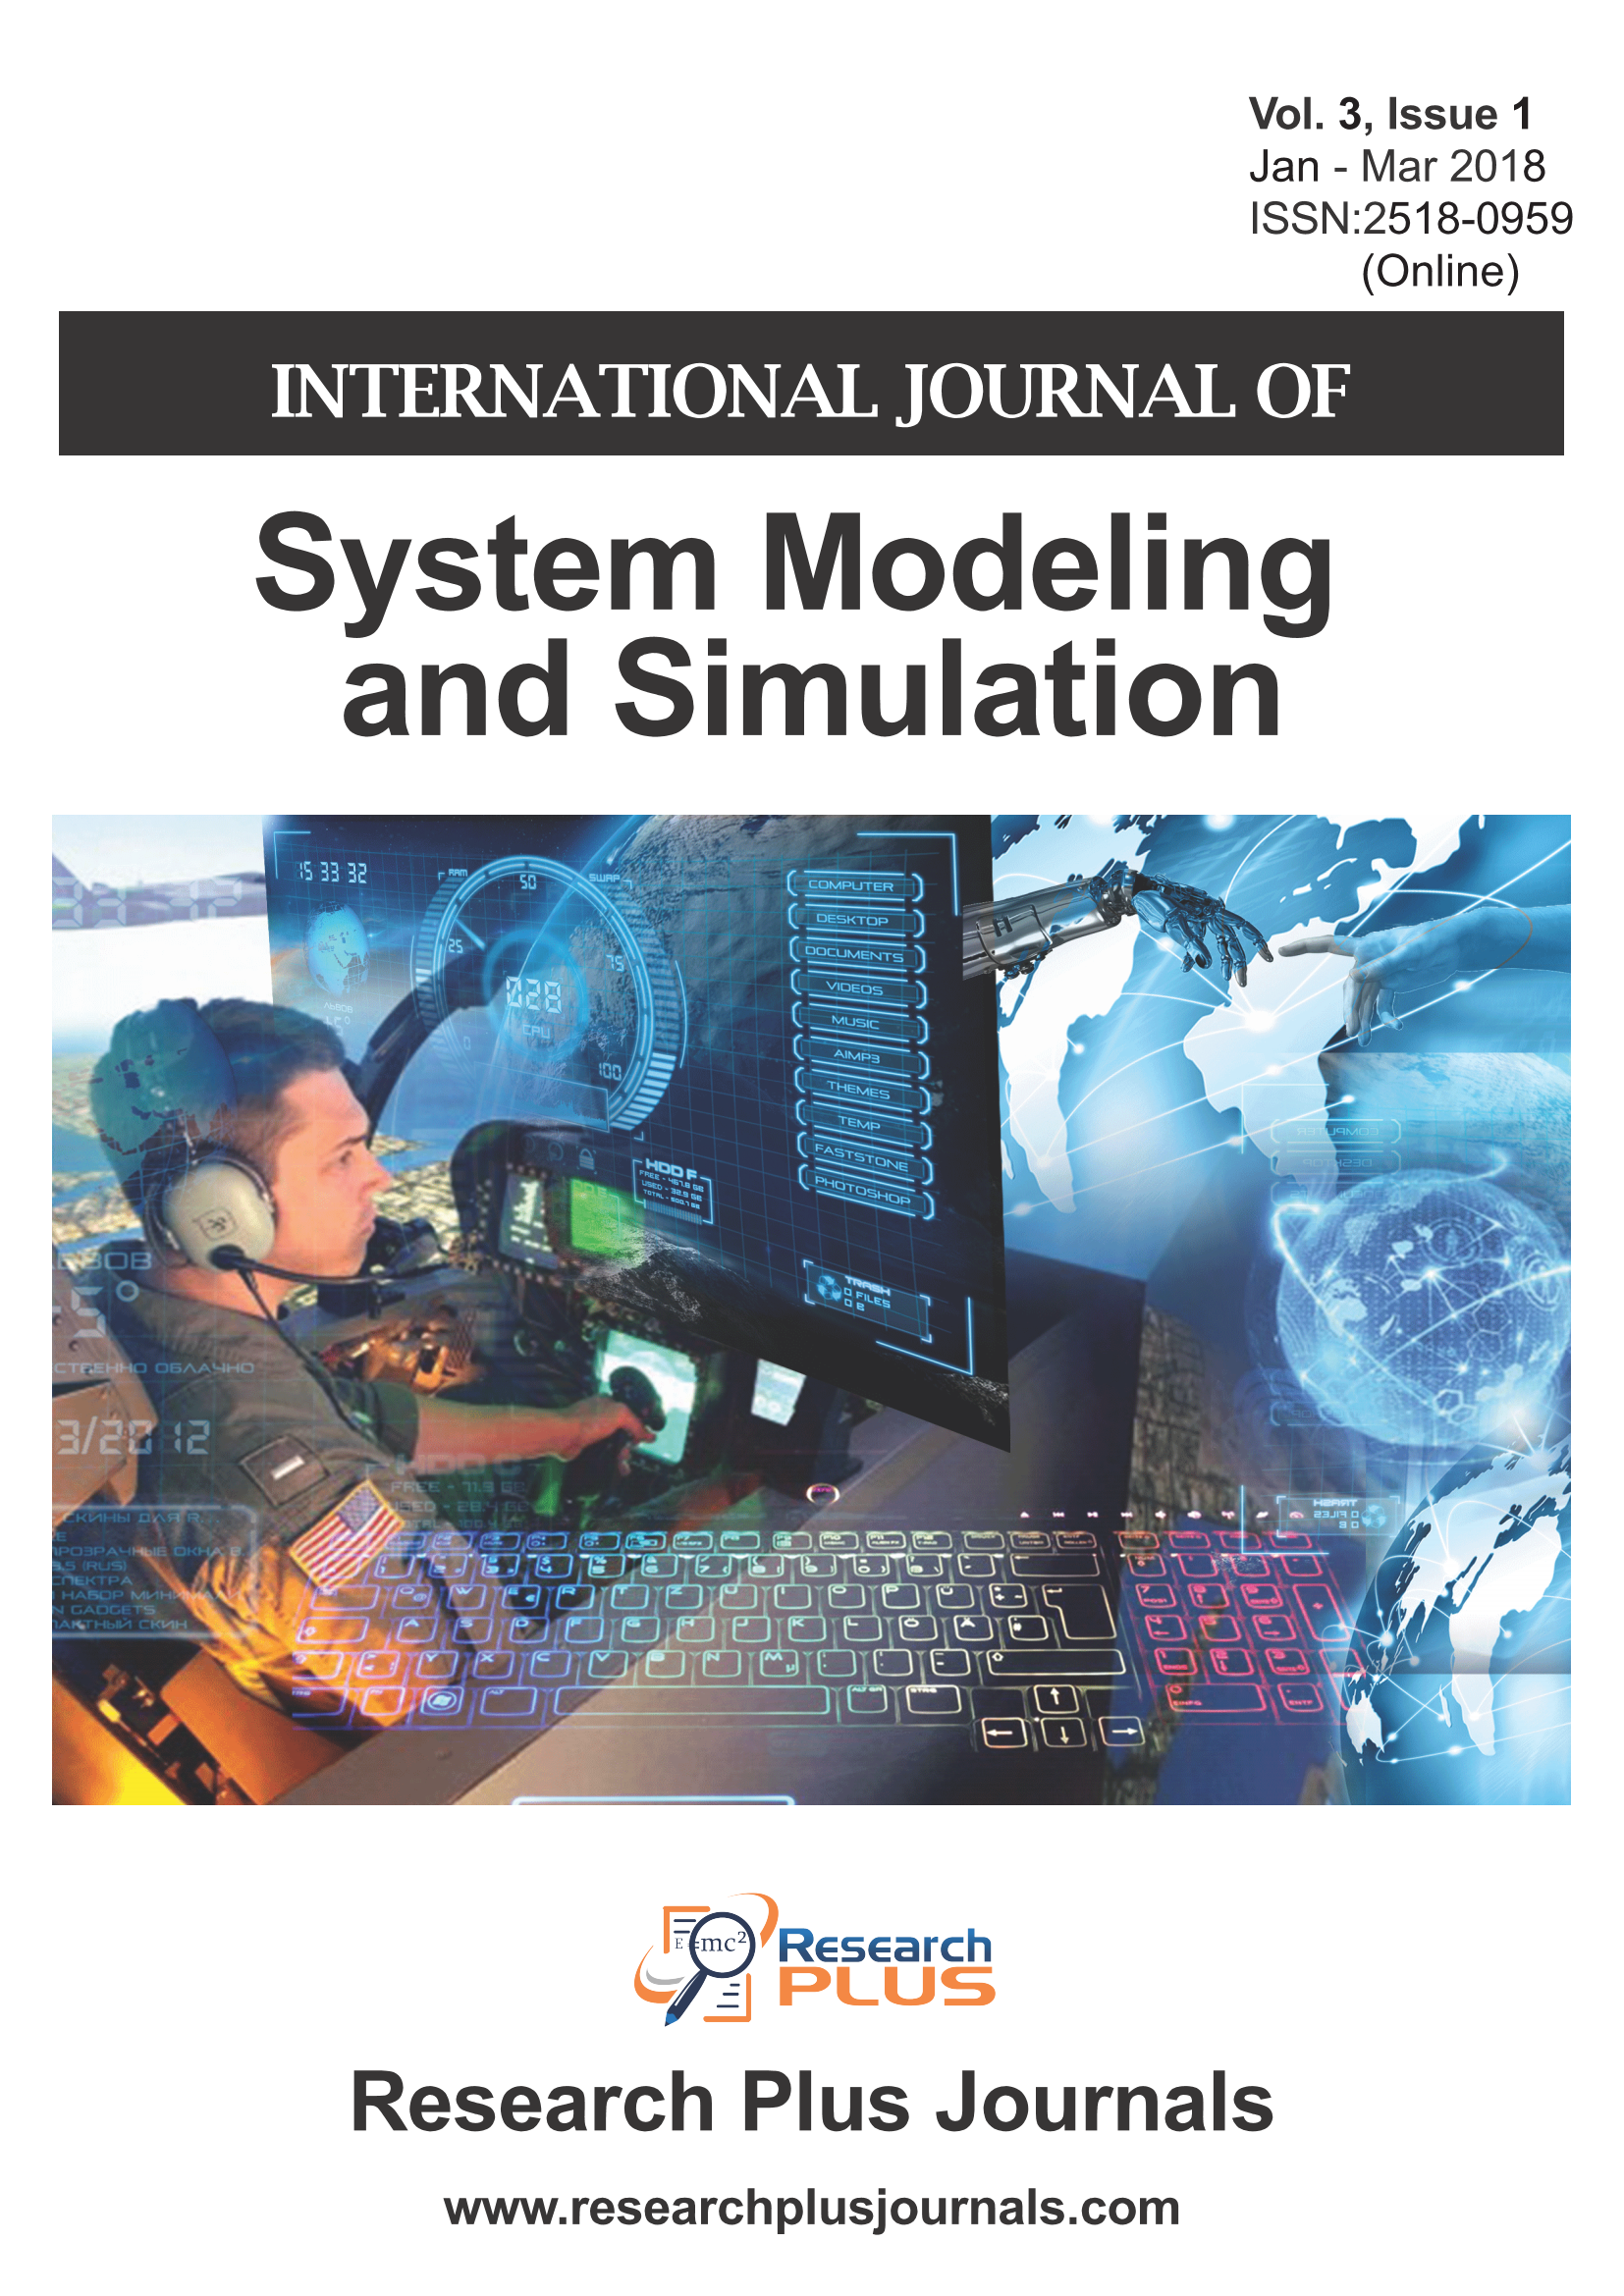 Volume 3, Issue 1, International Journal of System Modeling and Simulation (IJSMS)  (Online ISSN: 2518-0959)